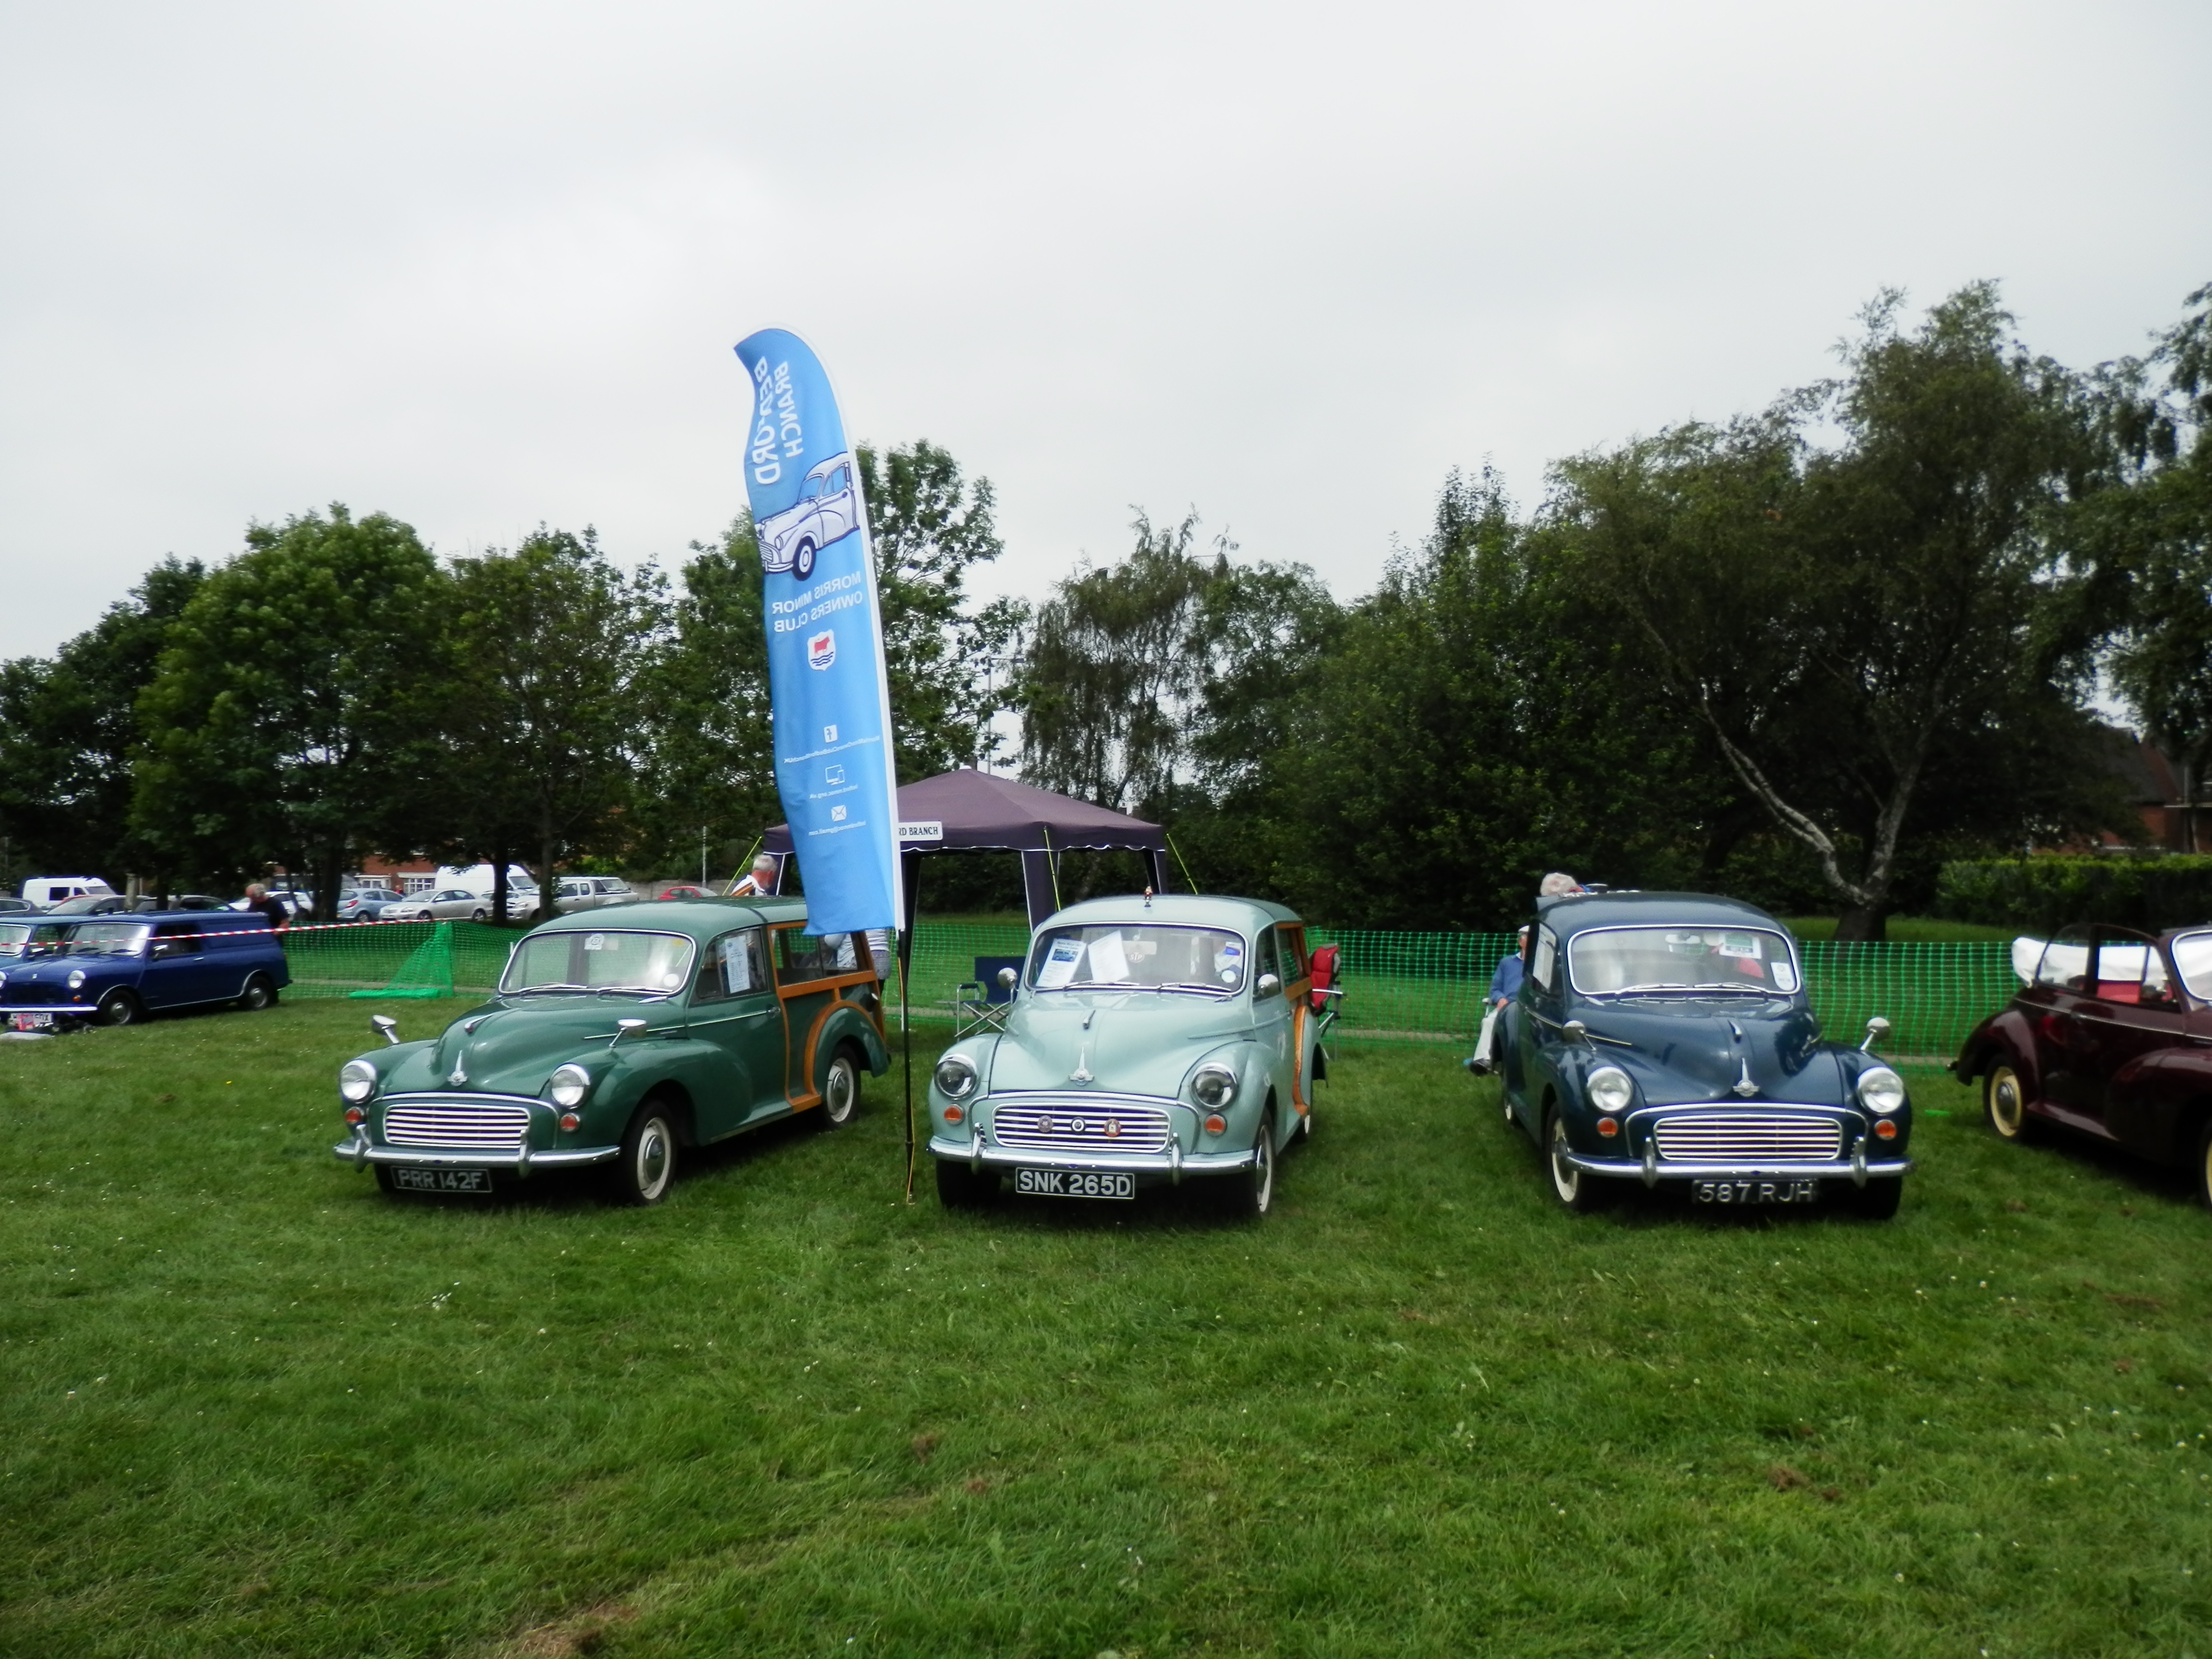 Luton Festival of Transport 2018